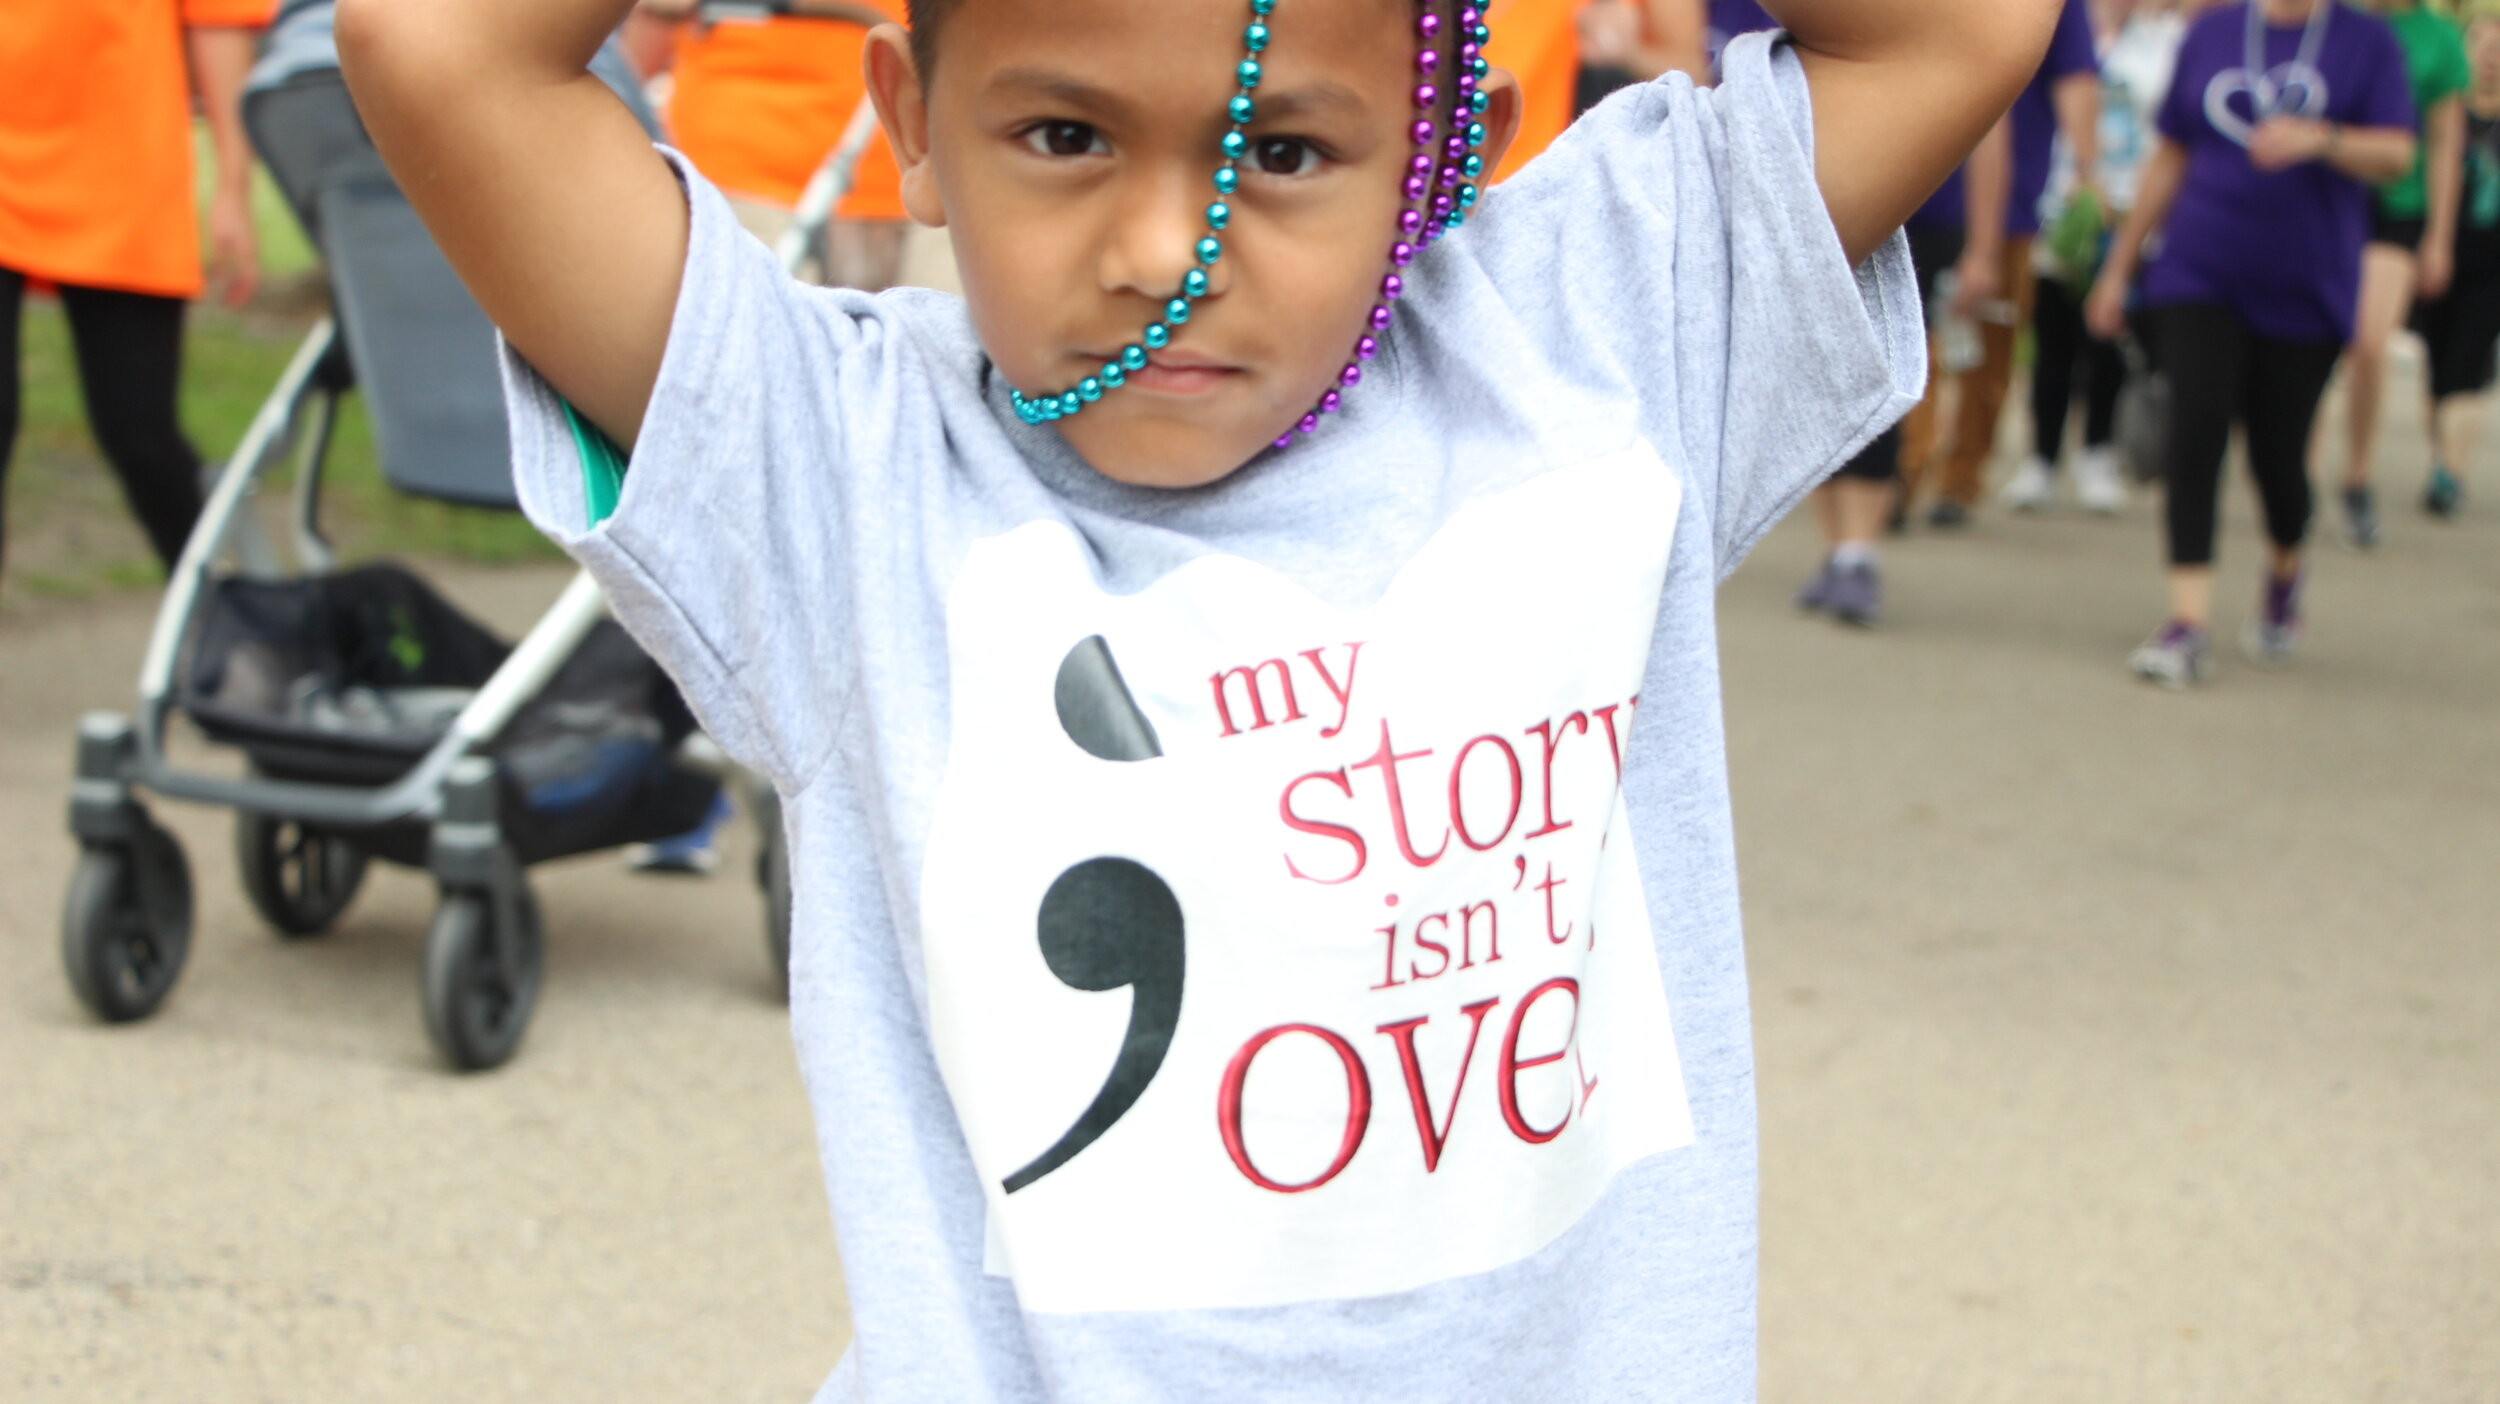 The 7-year-old, who came with his family members, was wearing purple Honor Beads, symbolizing the loss of a relative or friend.